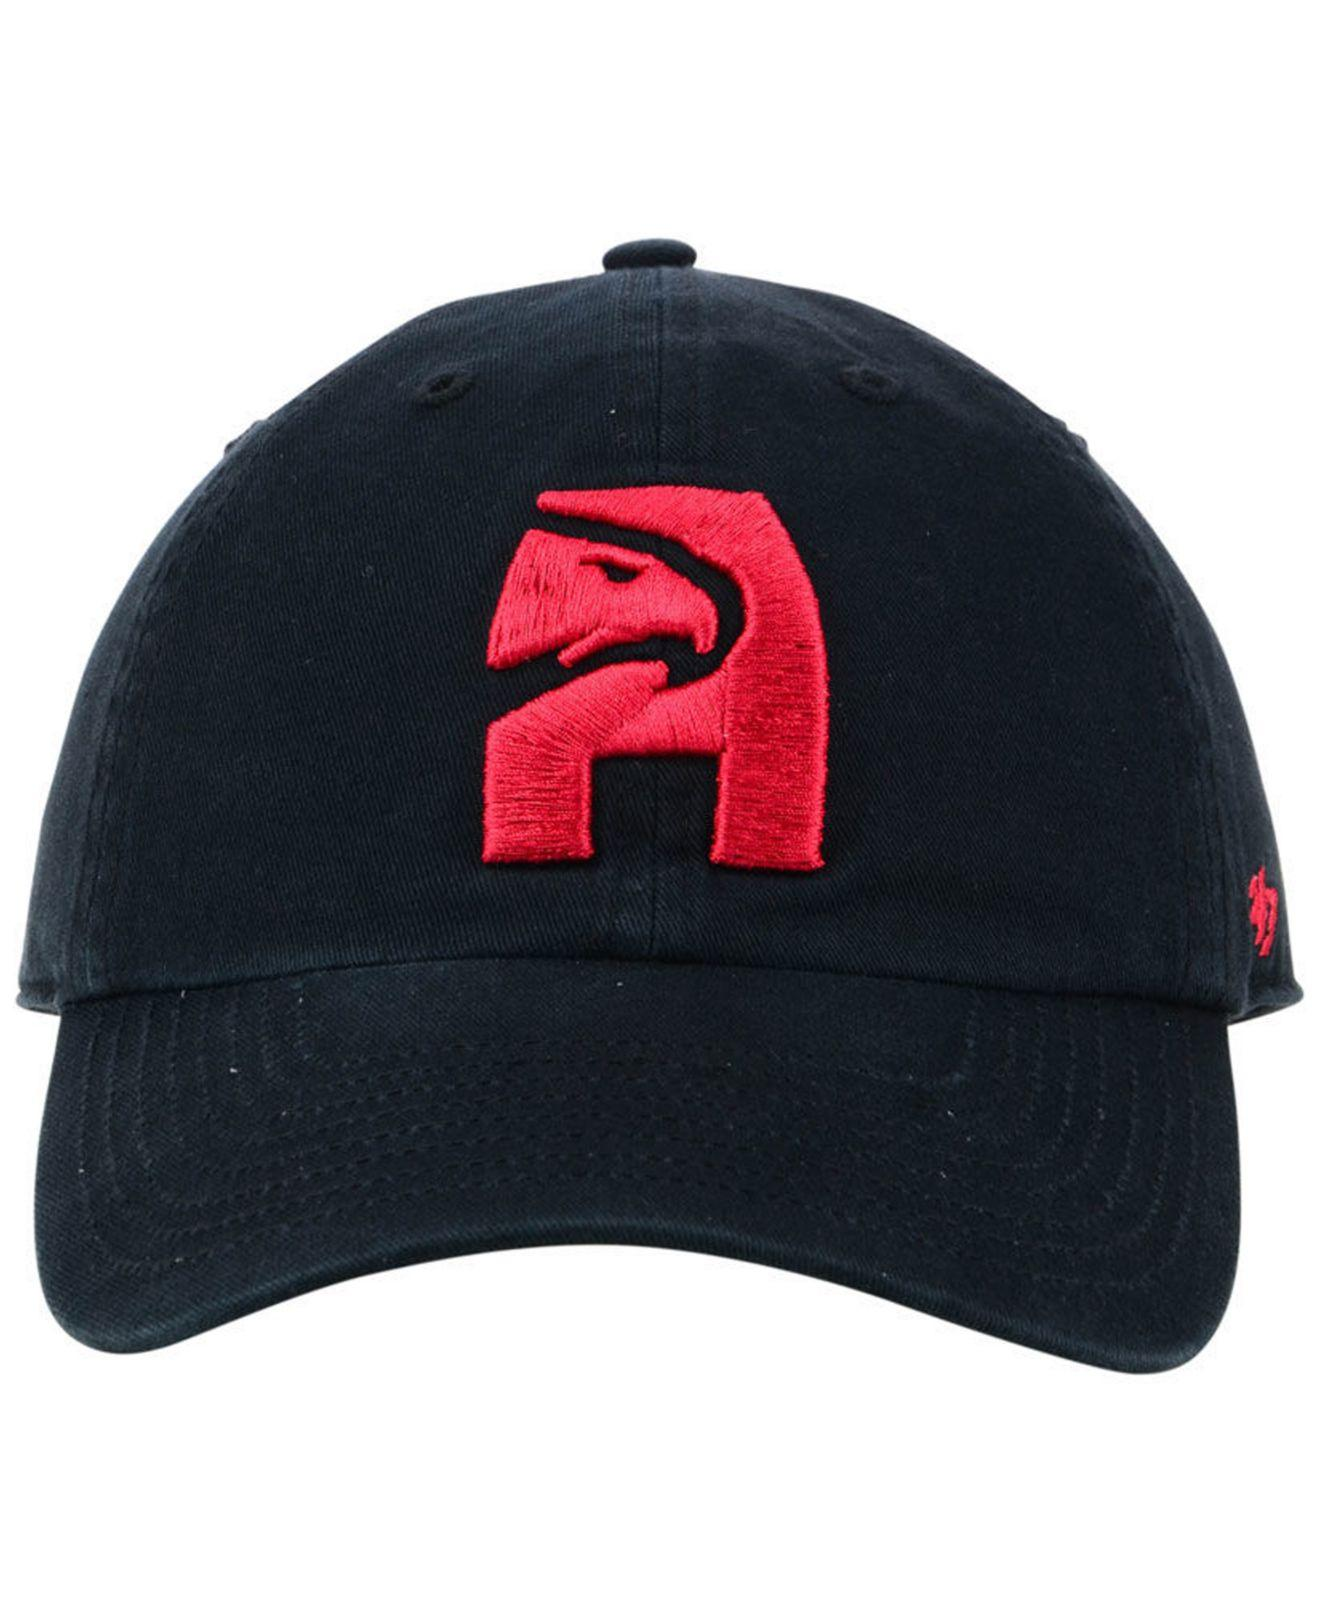 on sale 17962 a56ef Lyst - 47 Brand Atlanta Hawks Mash Up Clean Up Cap in Red for Men